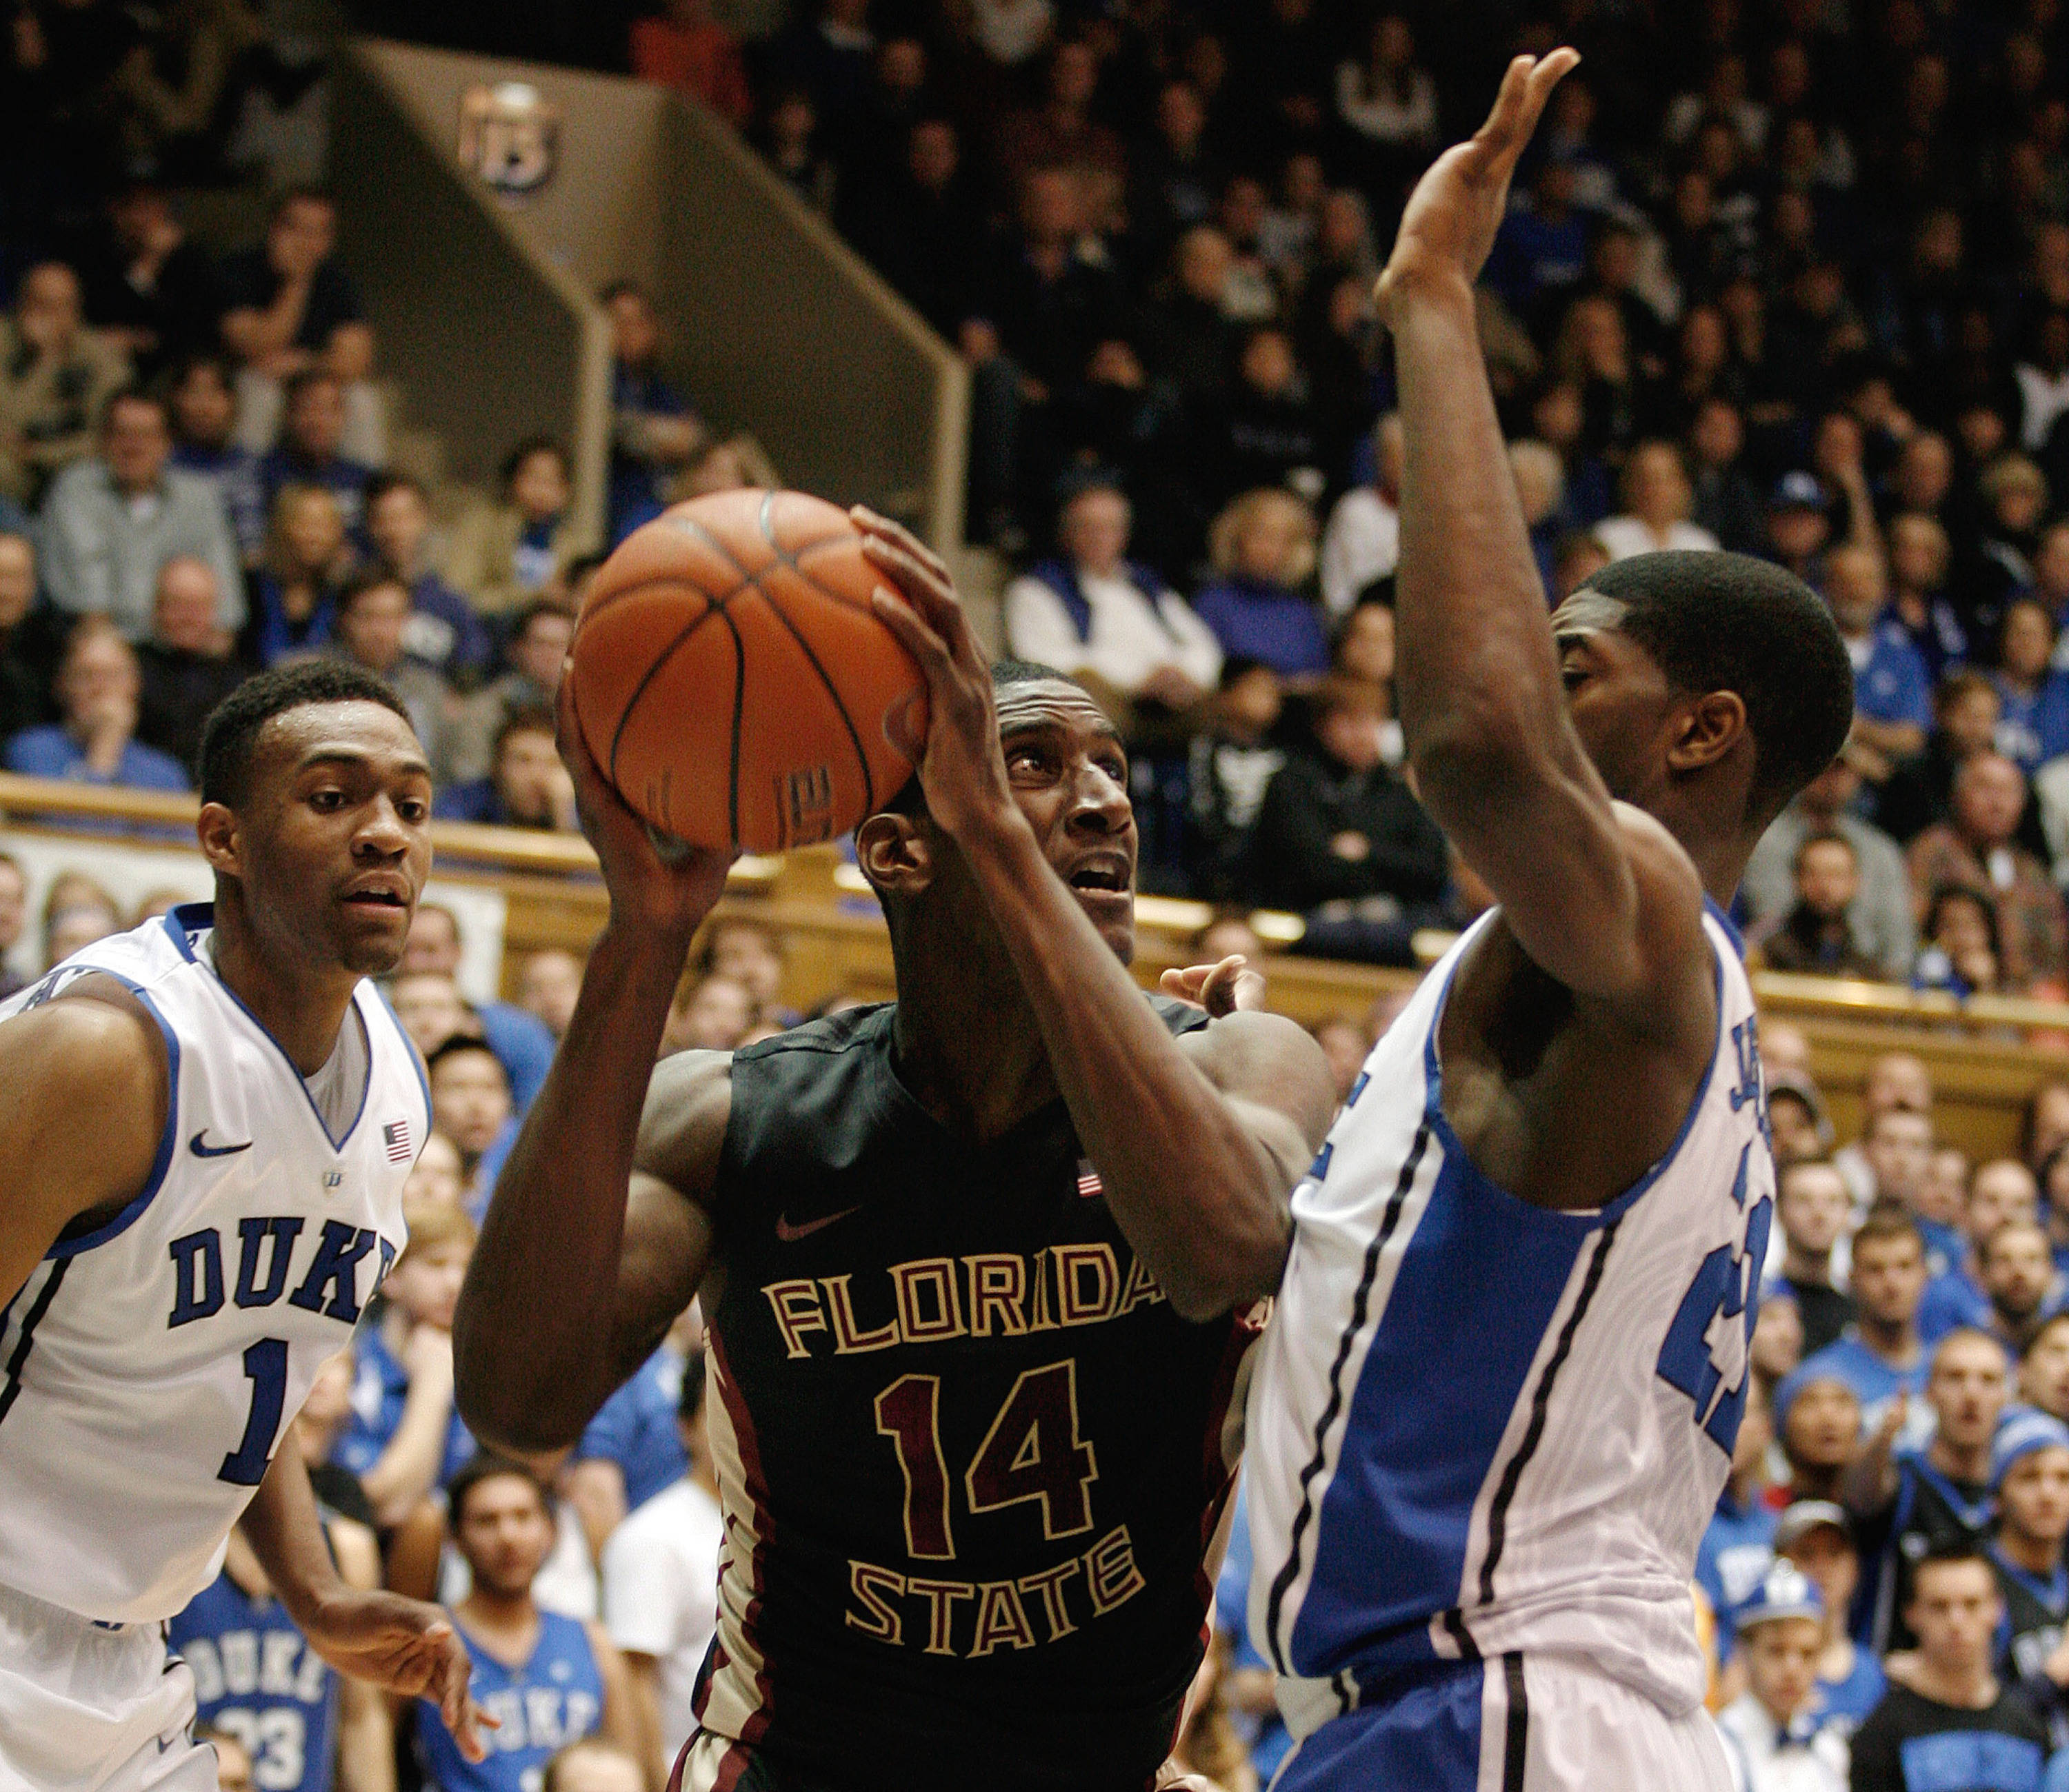 Jan 25, 2014; Durham, NC, USA; Seminoles forward Robert Gilchrist (14) drives against Duke Blue Devils forward Amile Jefferson (21). Mark Dolejs-USA TODAY Sports